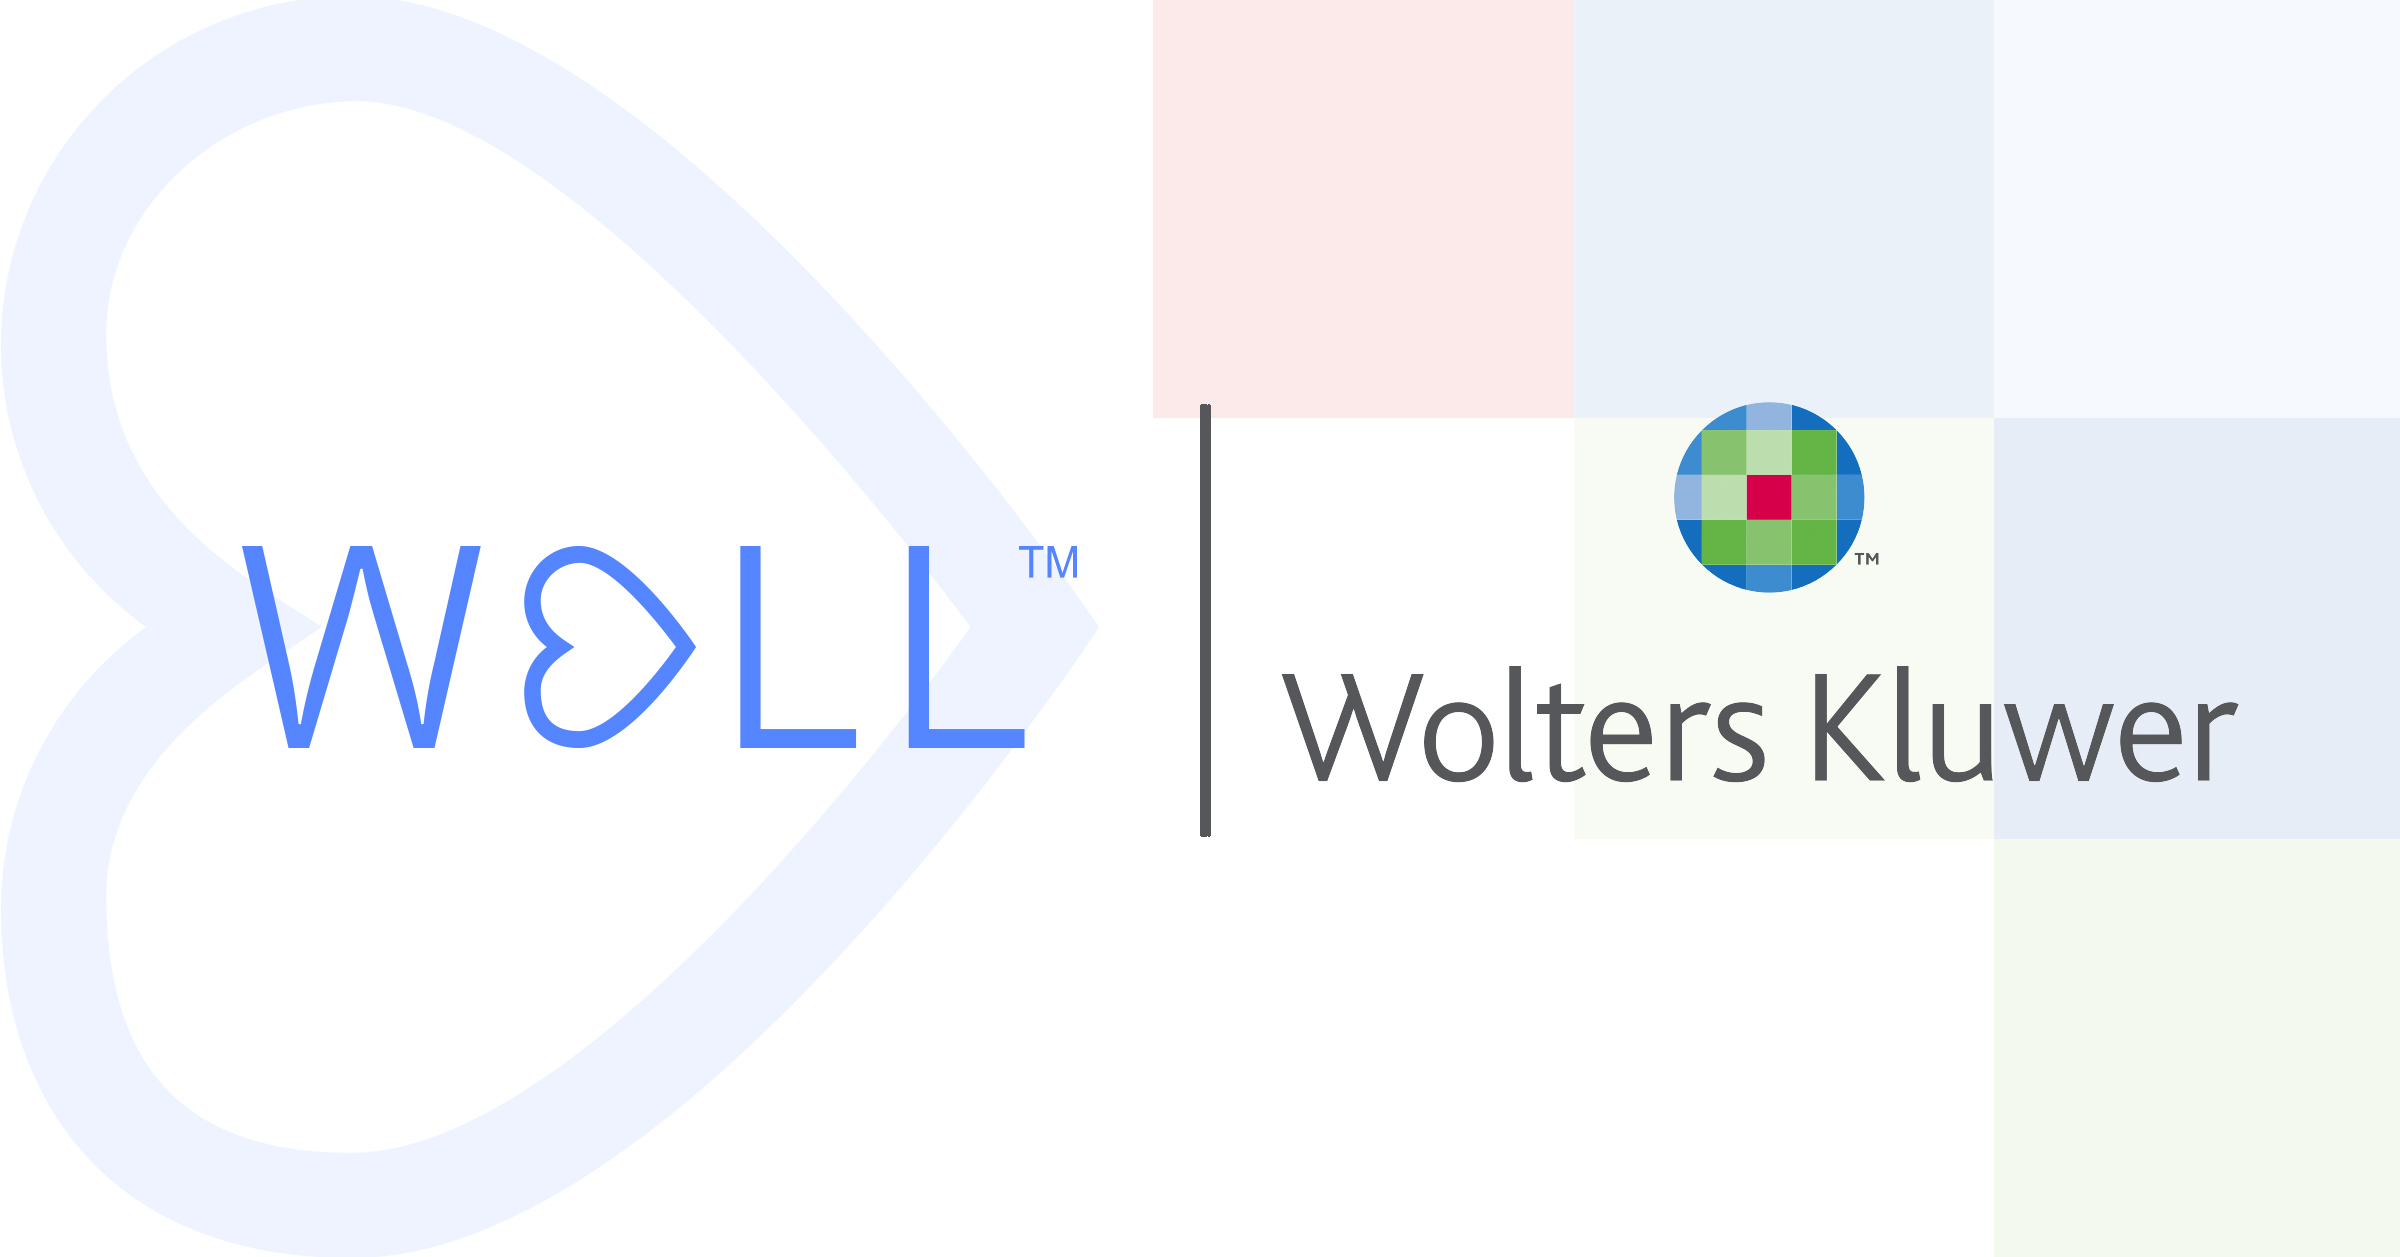 WELL and Wolters Kluwer partner to deliver patient education on COVID-19